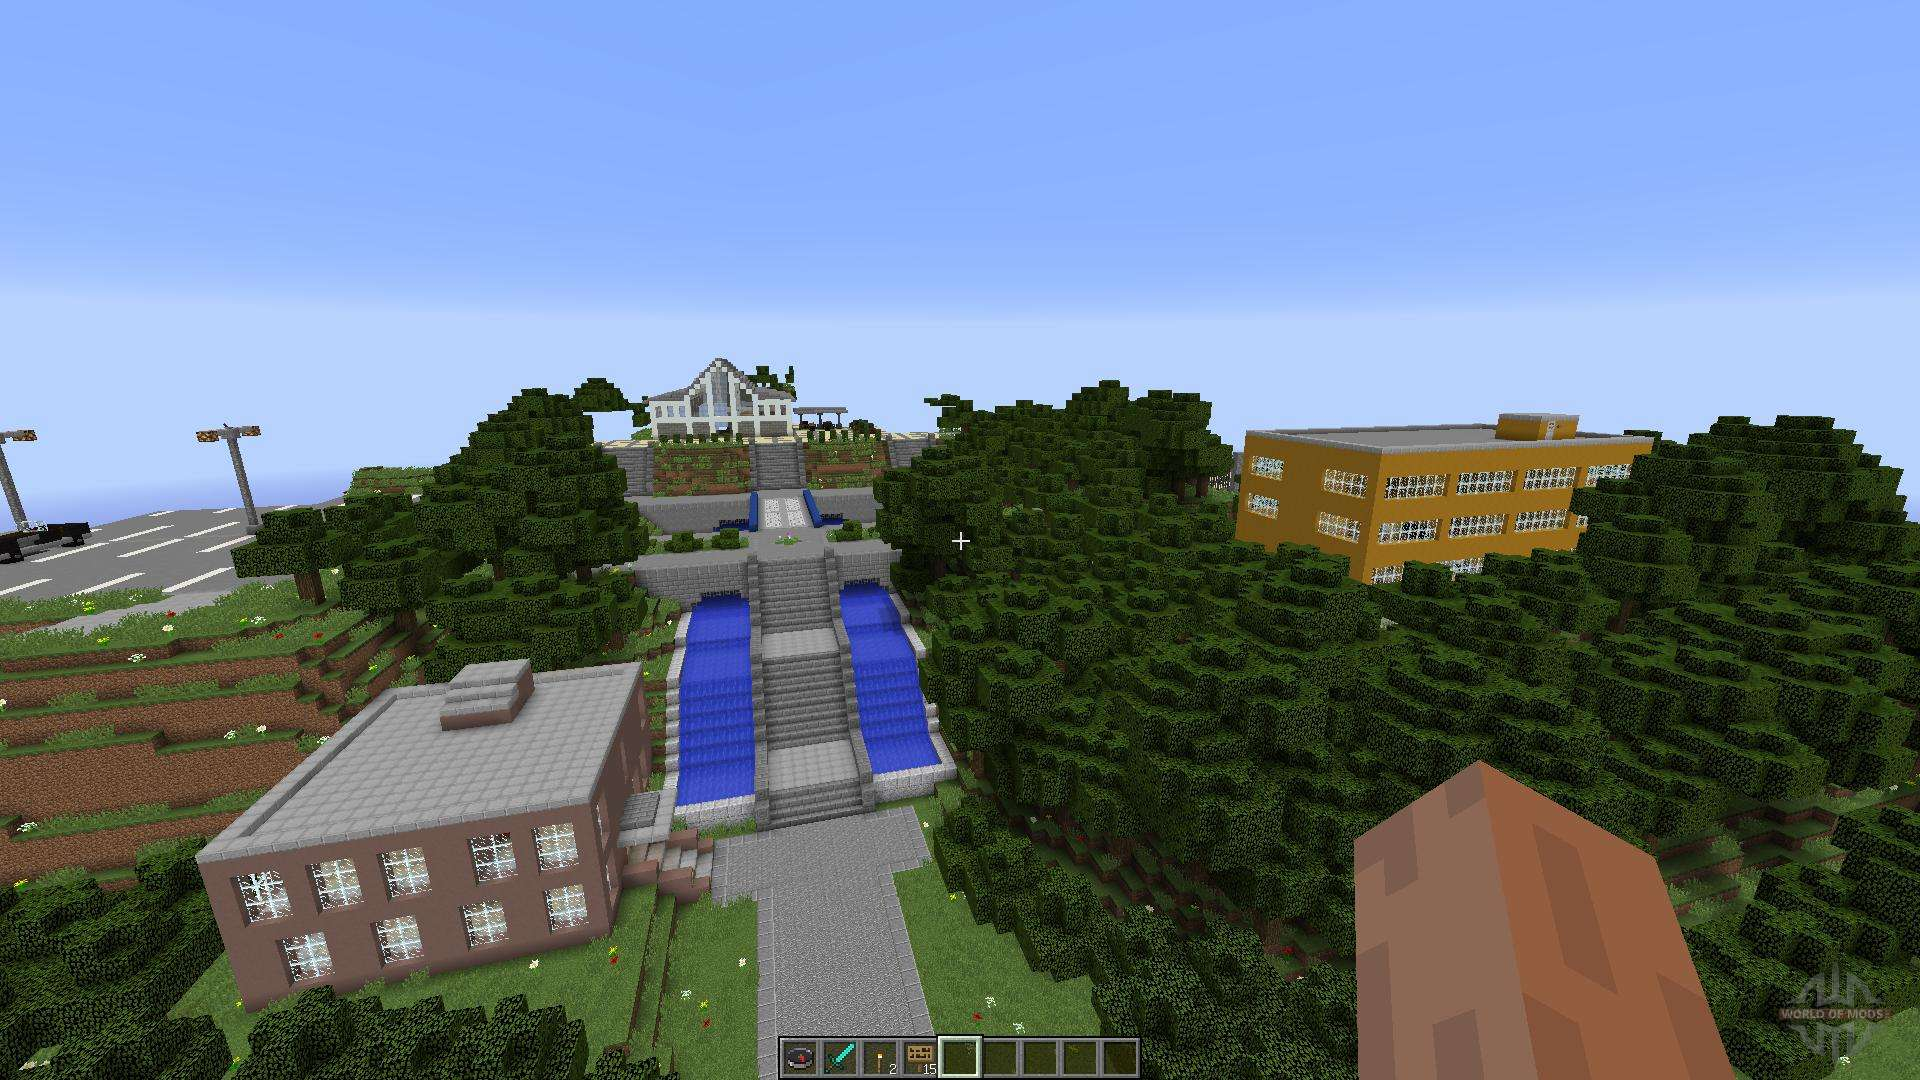 Archery School Map For Minecraft 1.12.2, 1.12.1 | PC Java ...